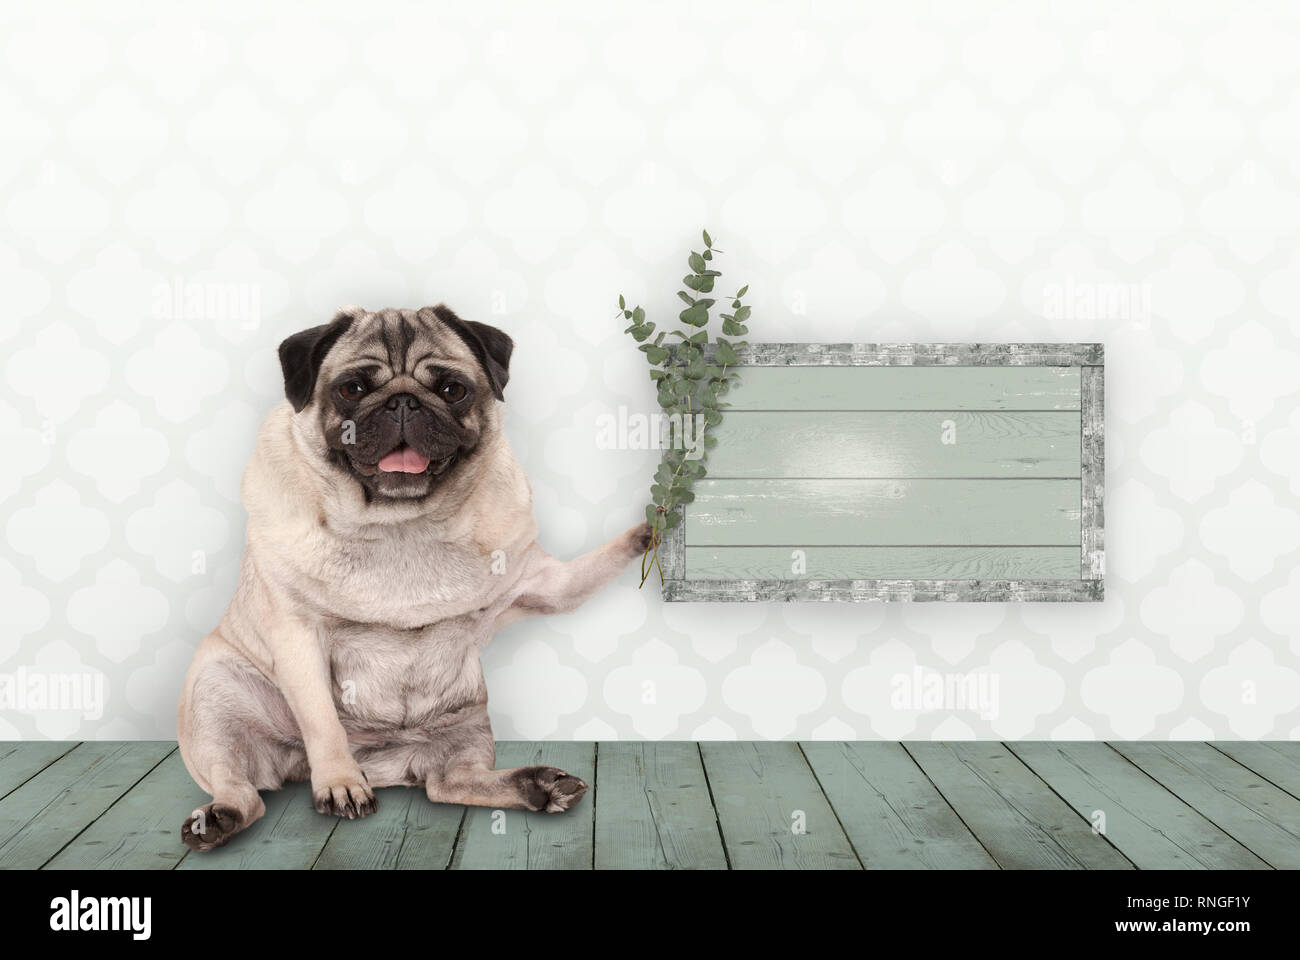 cute smiling pug puppy dog sitting down on old green wooden floor, holding blank sign and eucalyptus twigs and branches, in front of wall with morocca Stock Photo